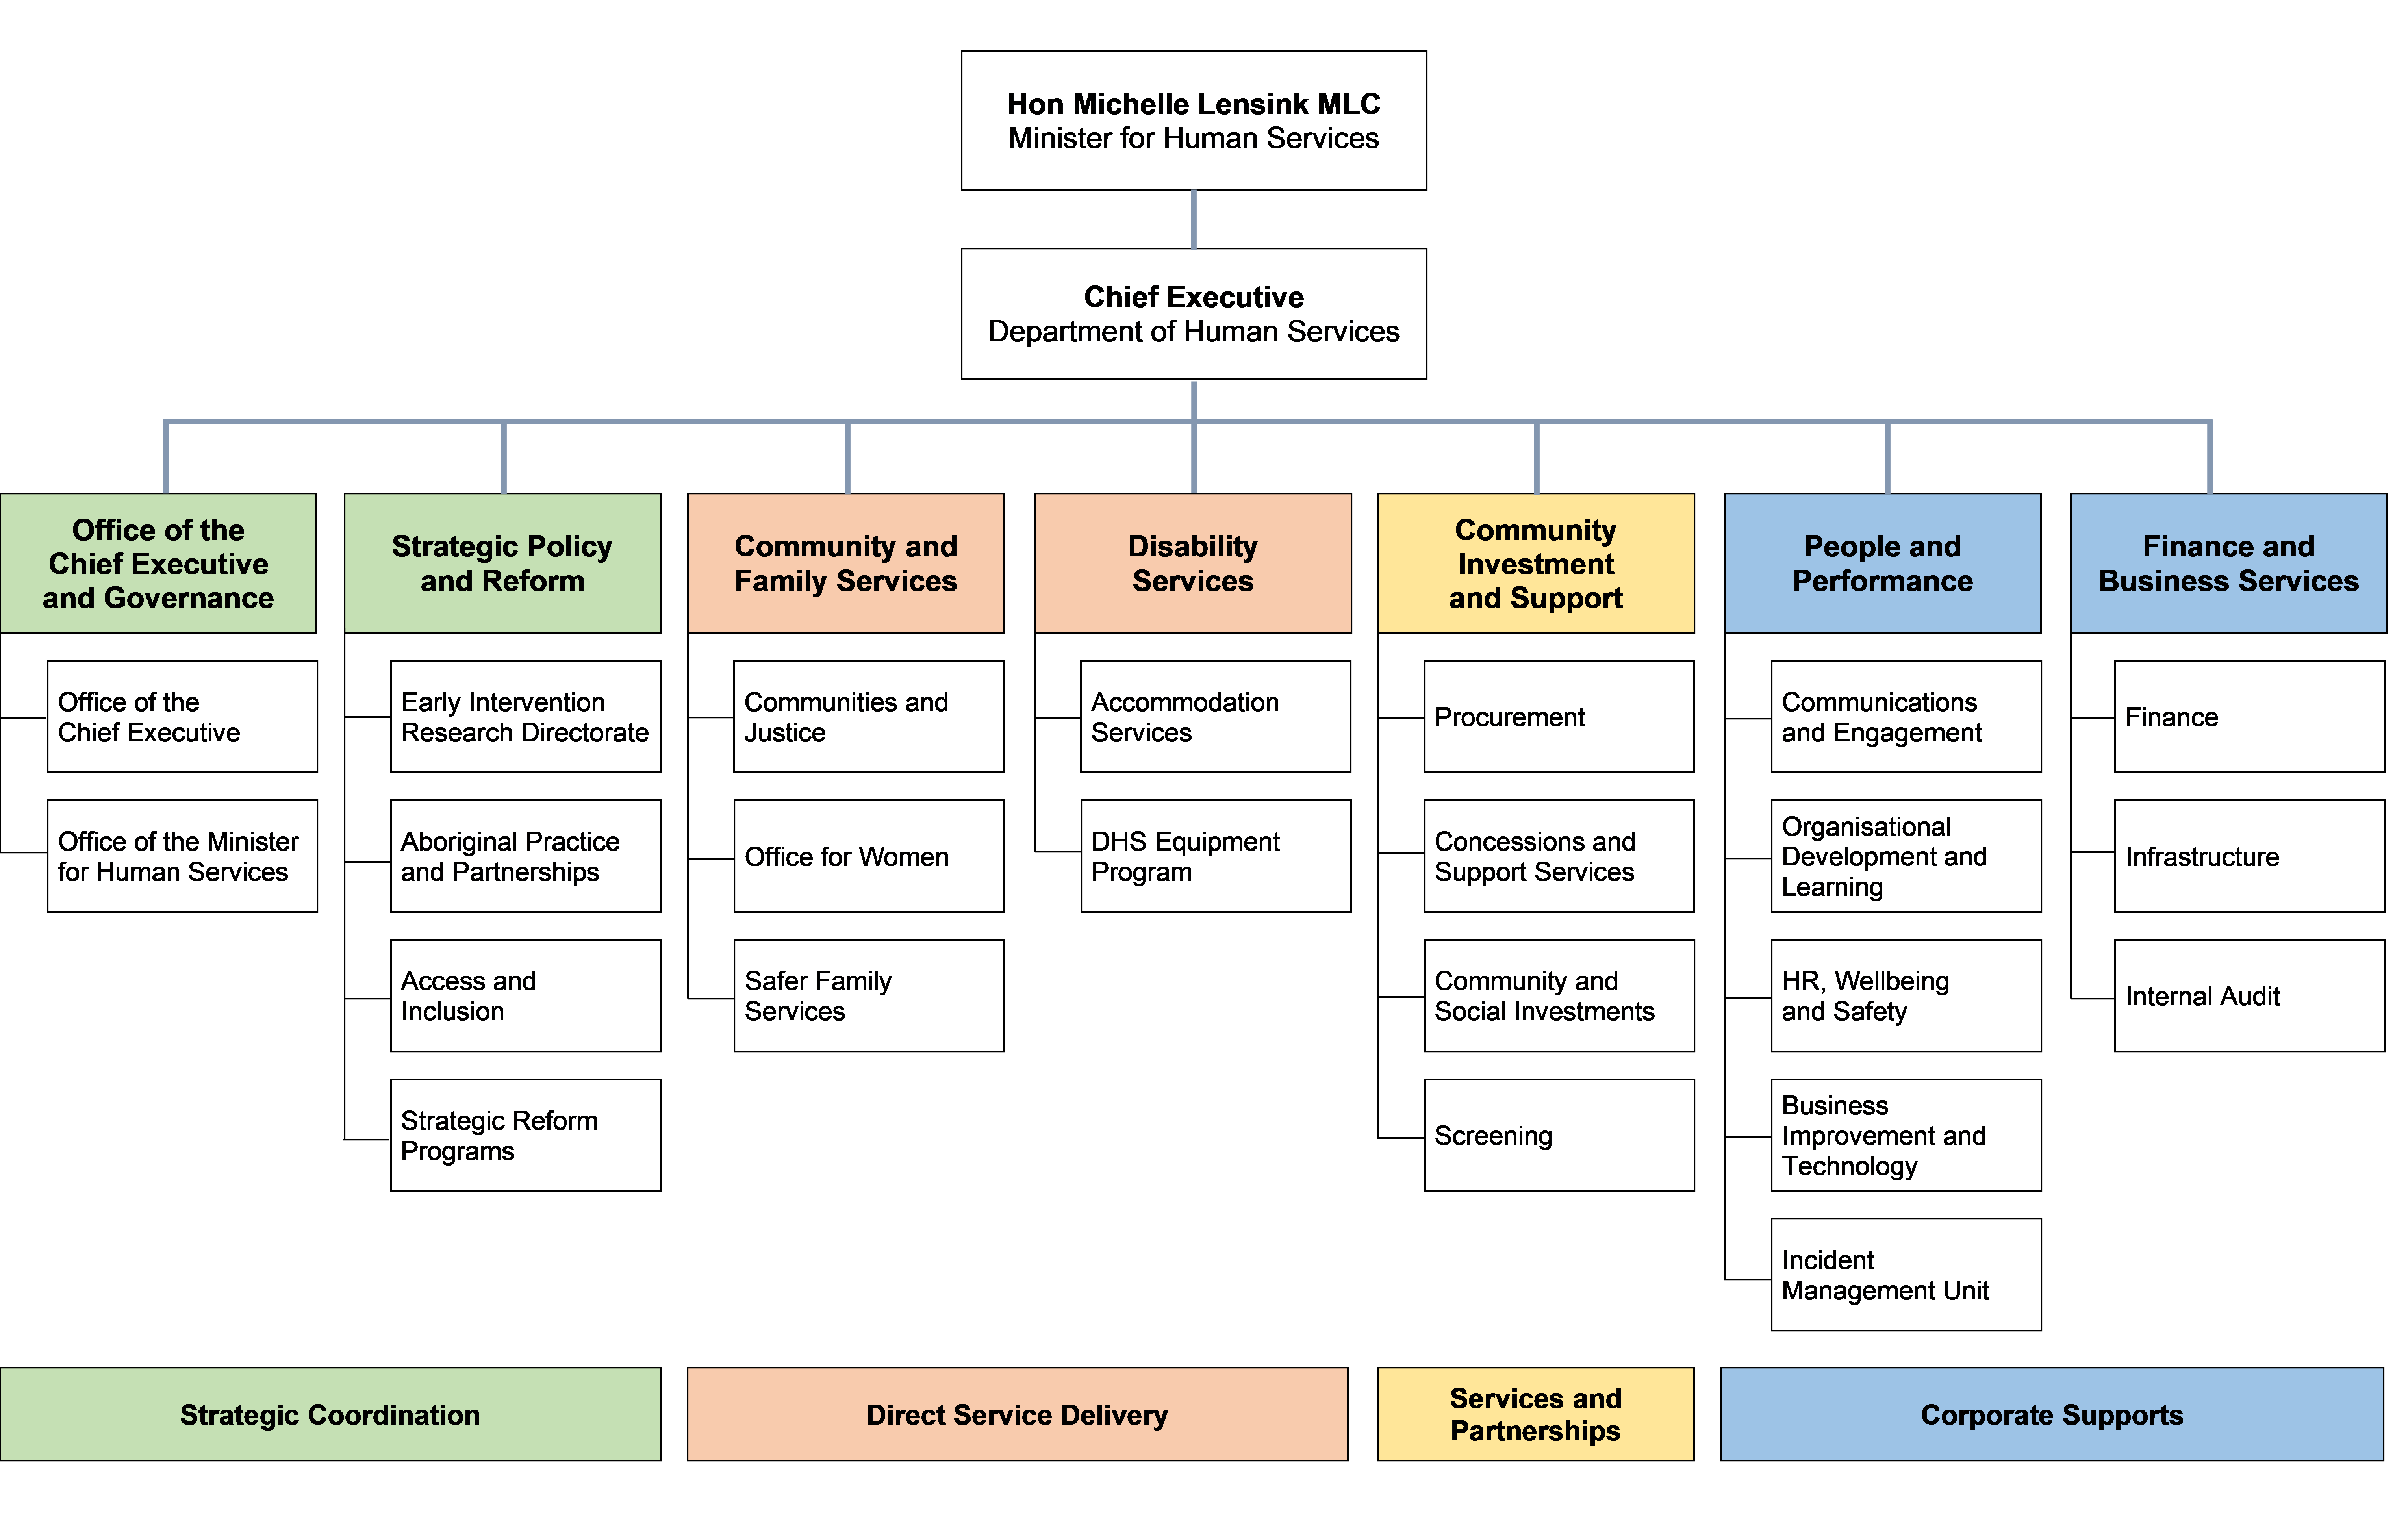 DHS organisational structure as at 30 June 2020. There is a link to a plain text description on this page.